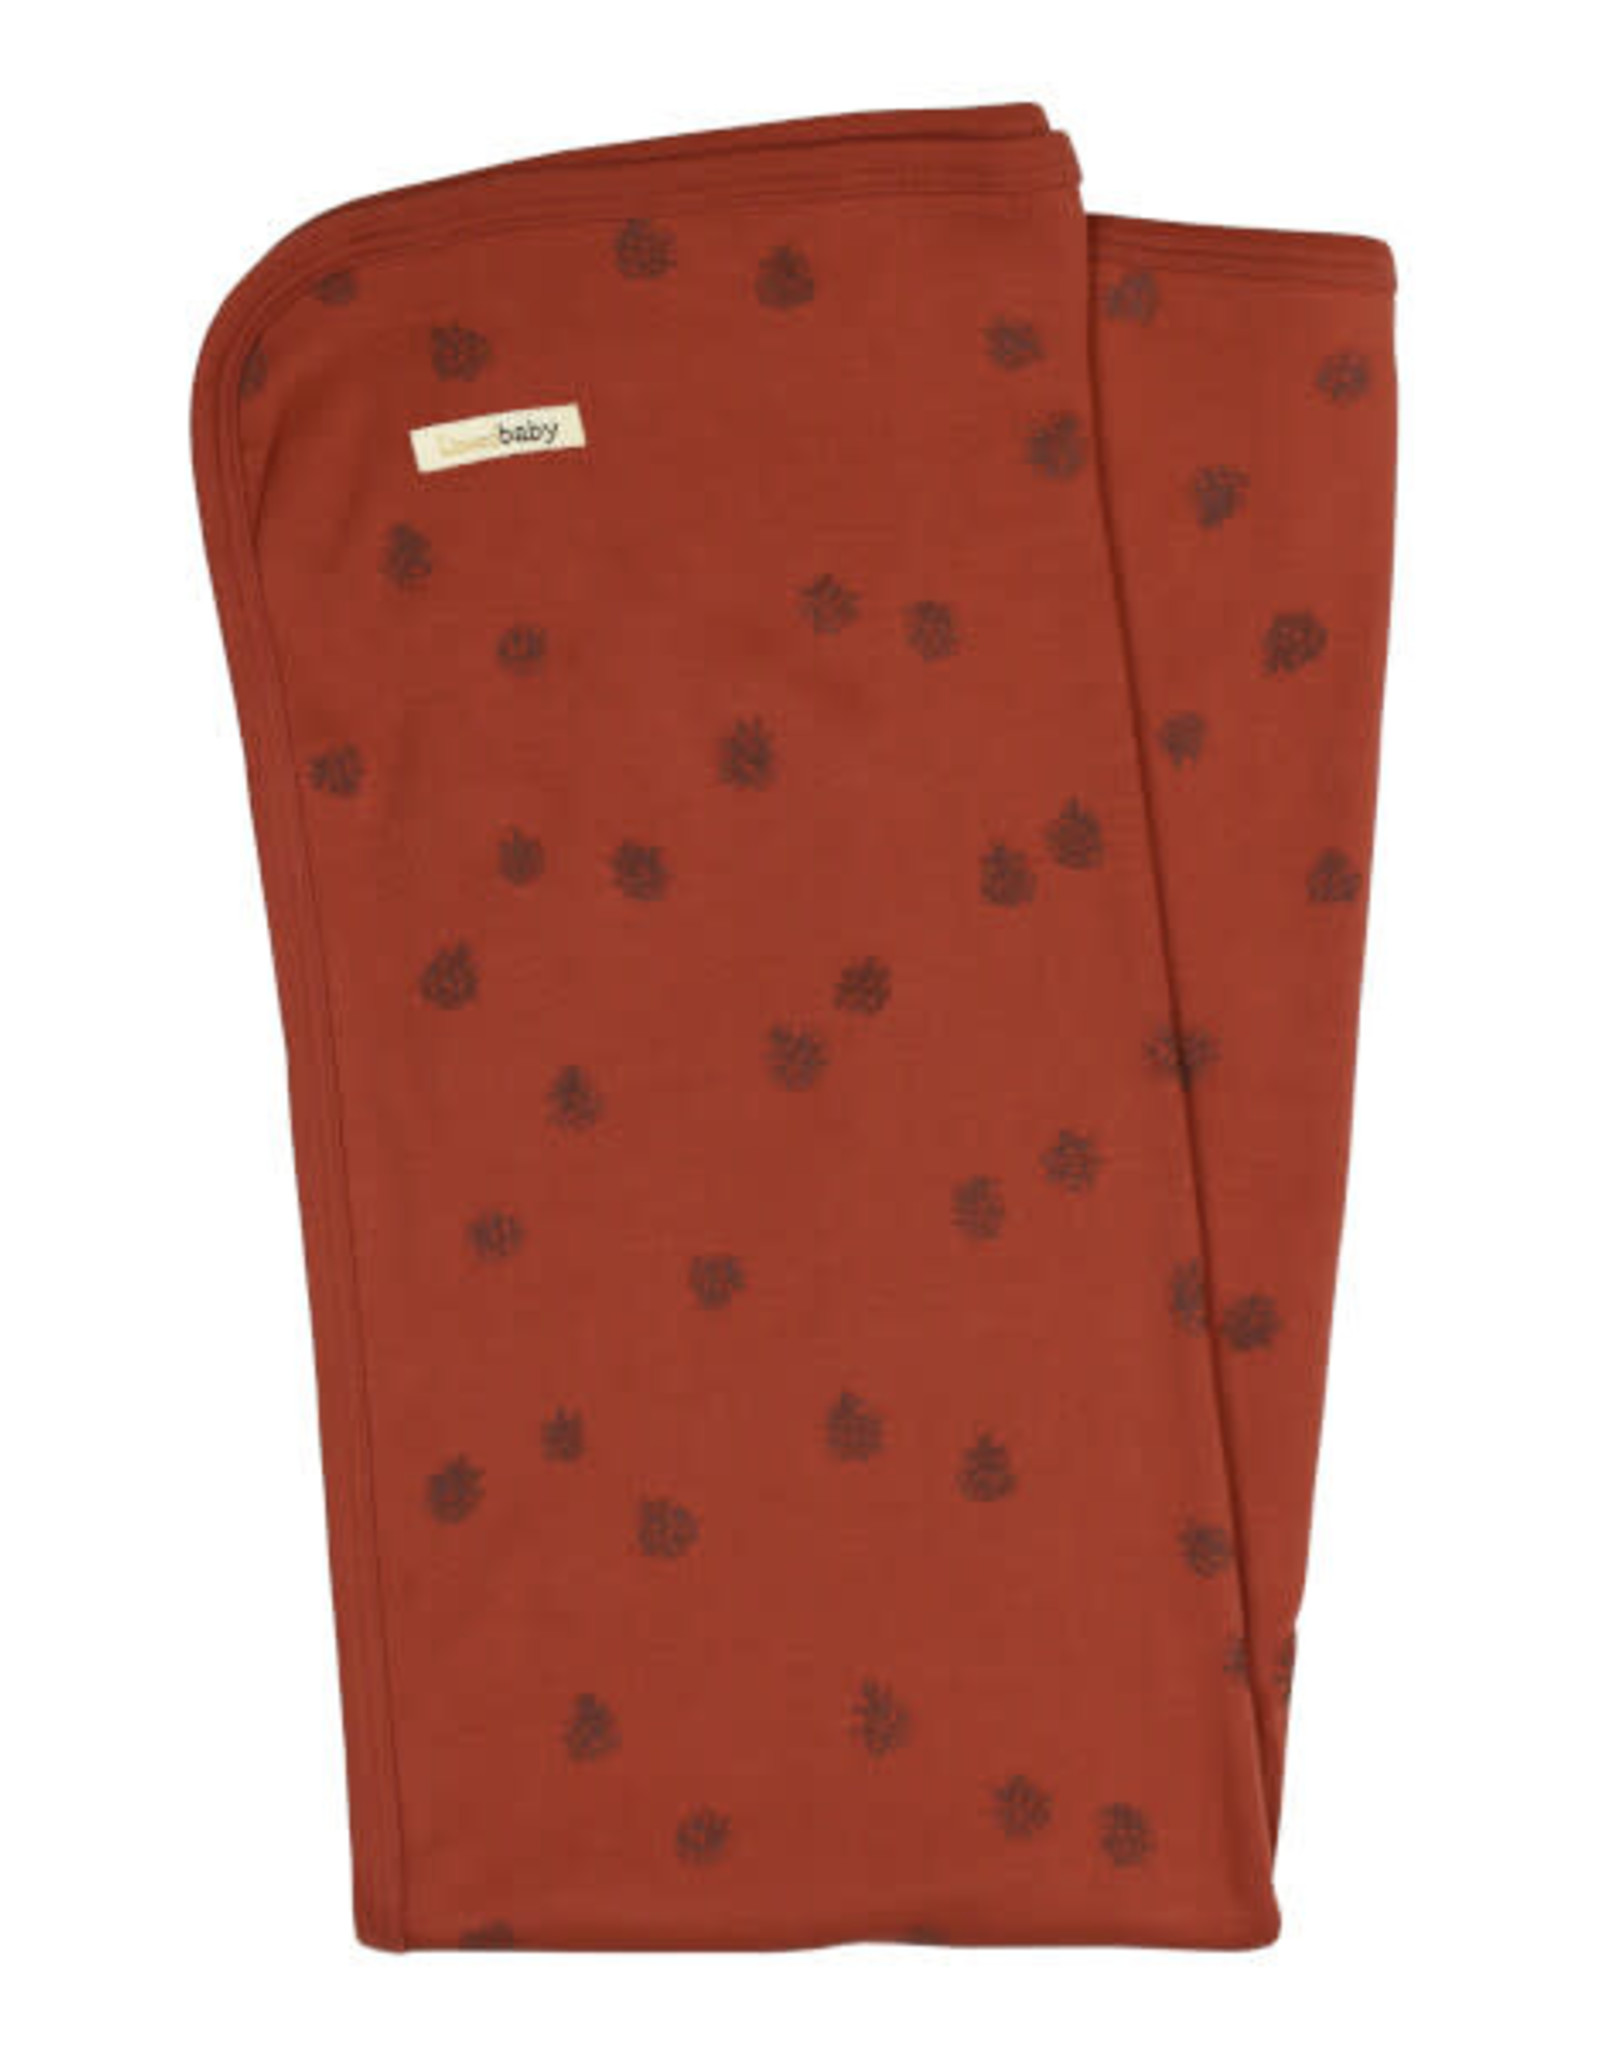 L'oved Baby Cinnamon Pinecone Swaddle Blanket